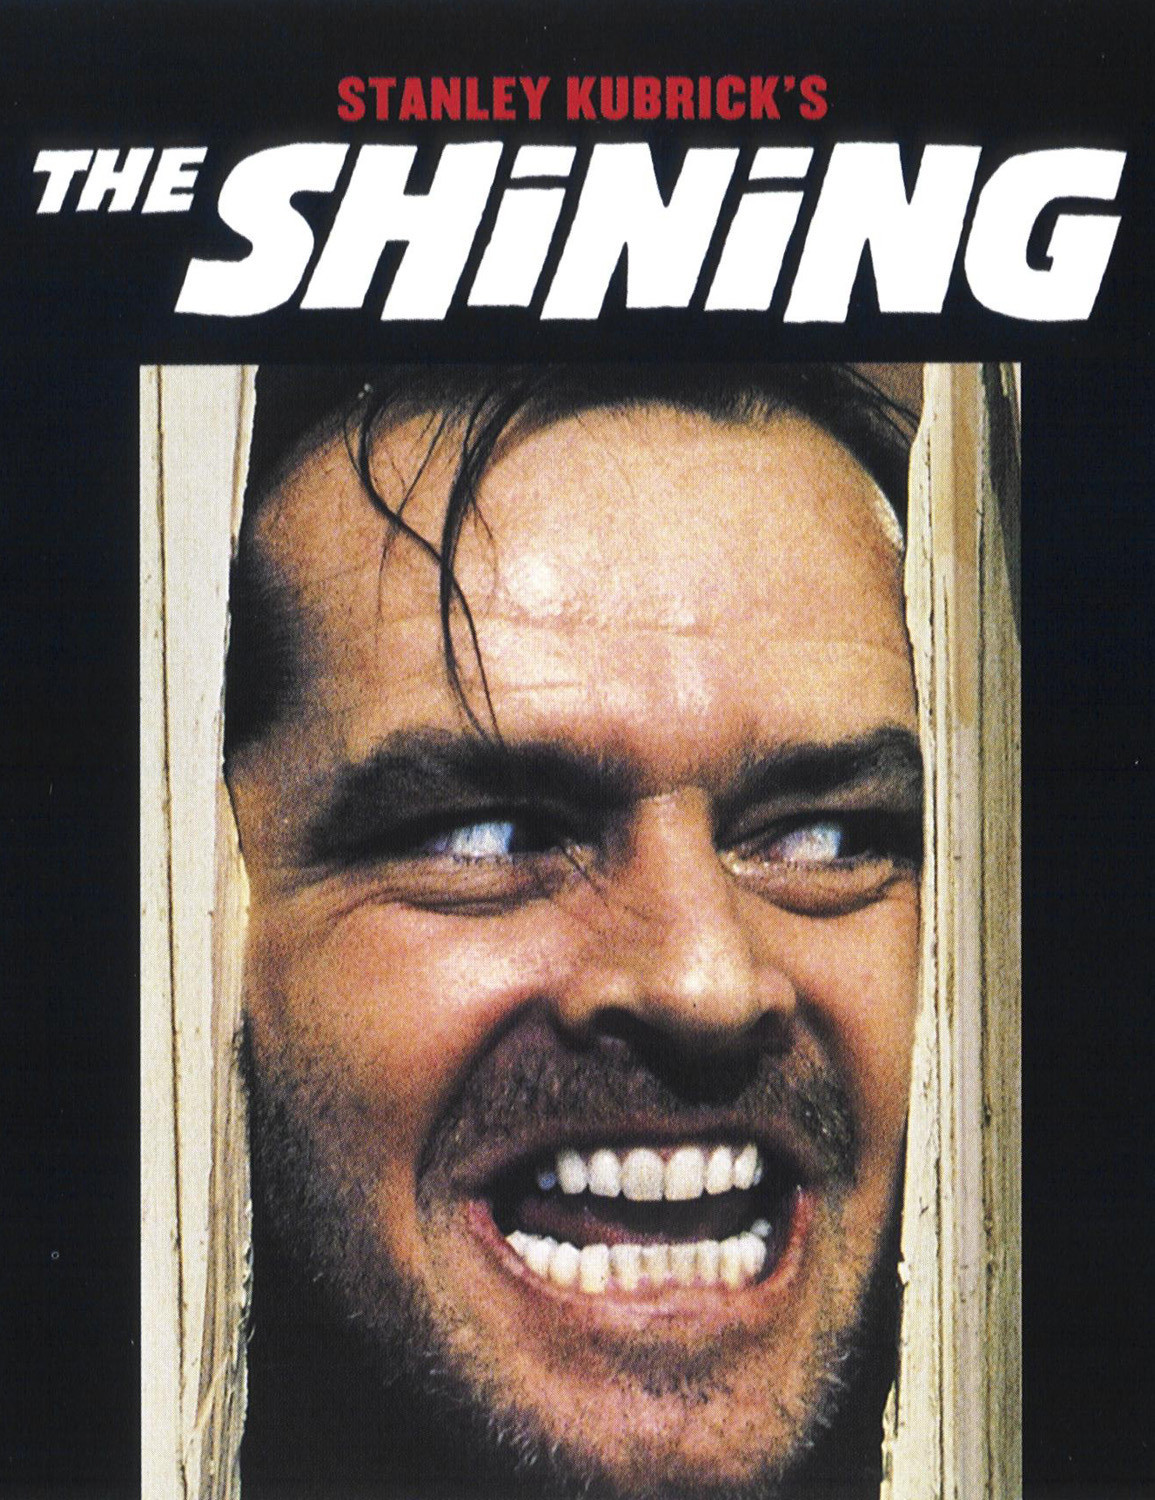 Rearview: The Shining (1980) – LeahCsMovies